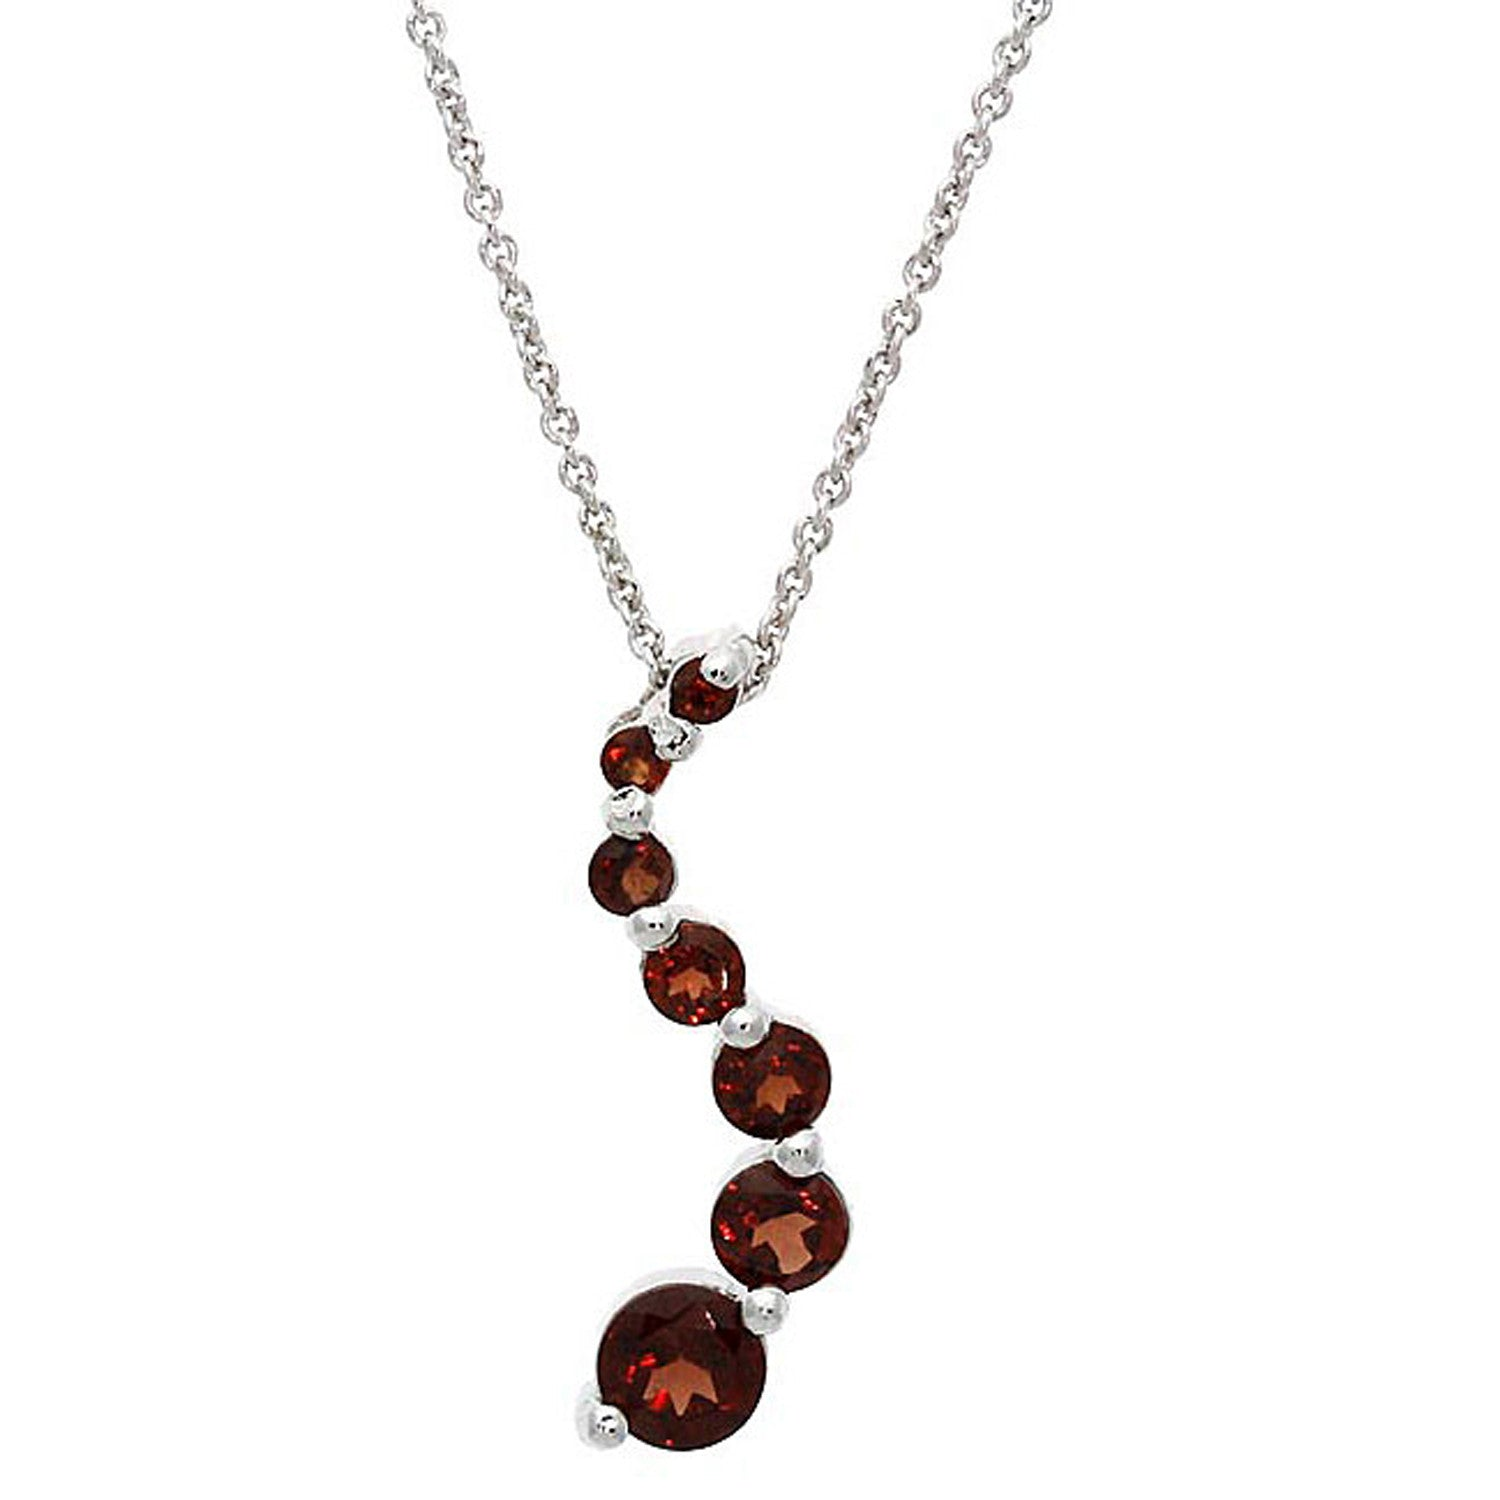 Gemstone 18 Inch Cable Chained Journey Necklace - Silver / Garnet